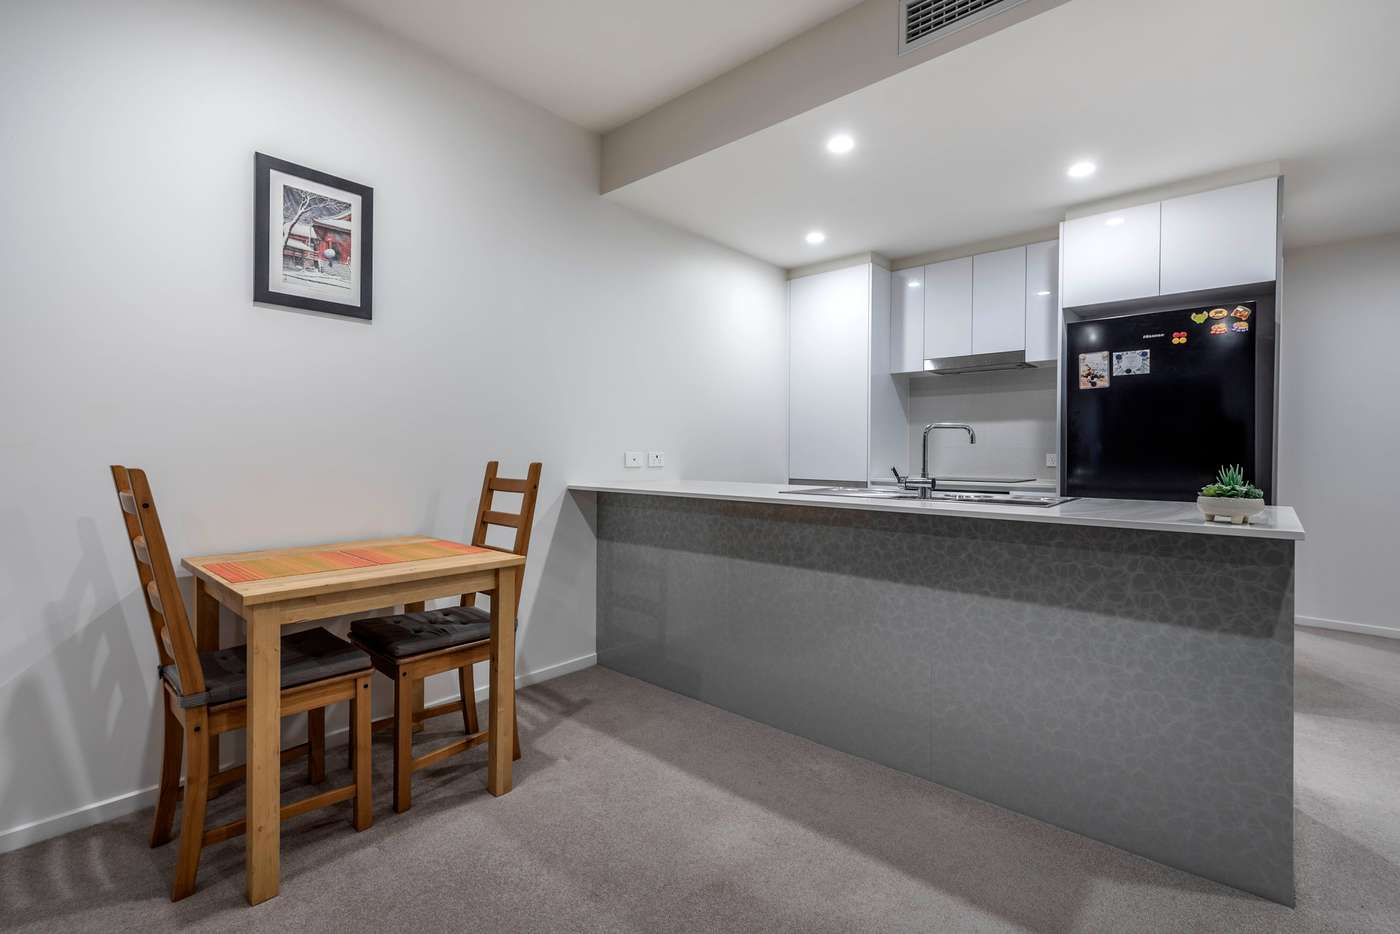 Fifth view of Homely apartment listing, 703/53 Mort Street, Braddon ACT 2612